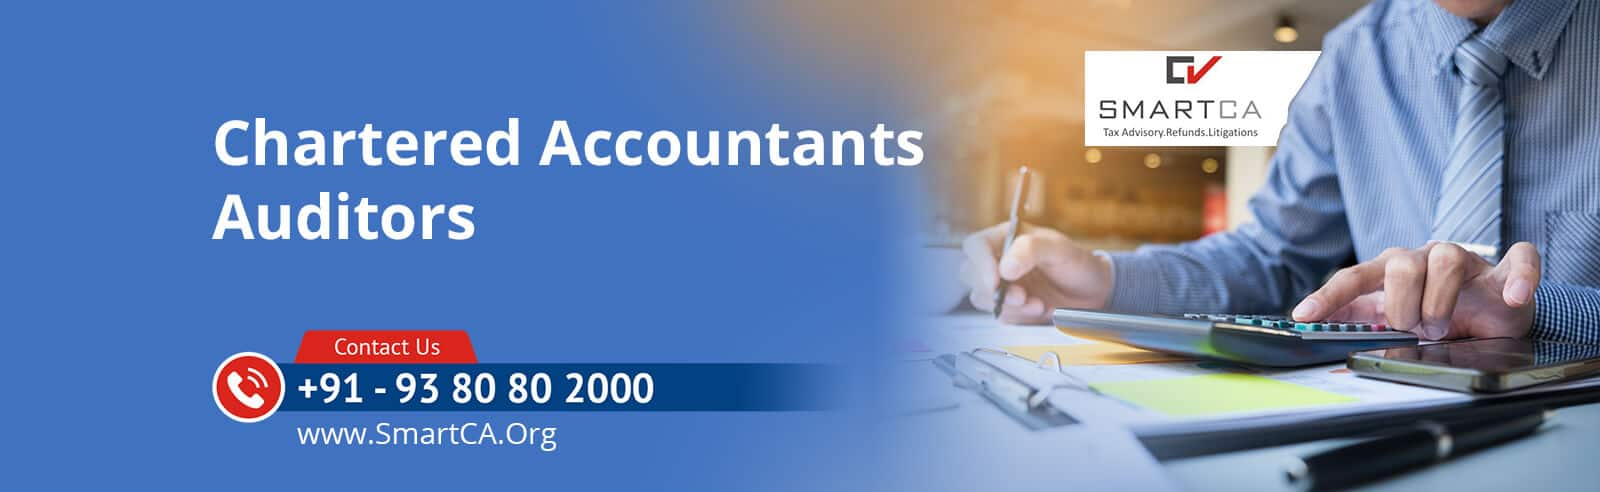 Auditors in Chennai Triplicane